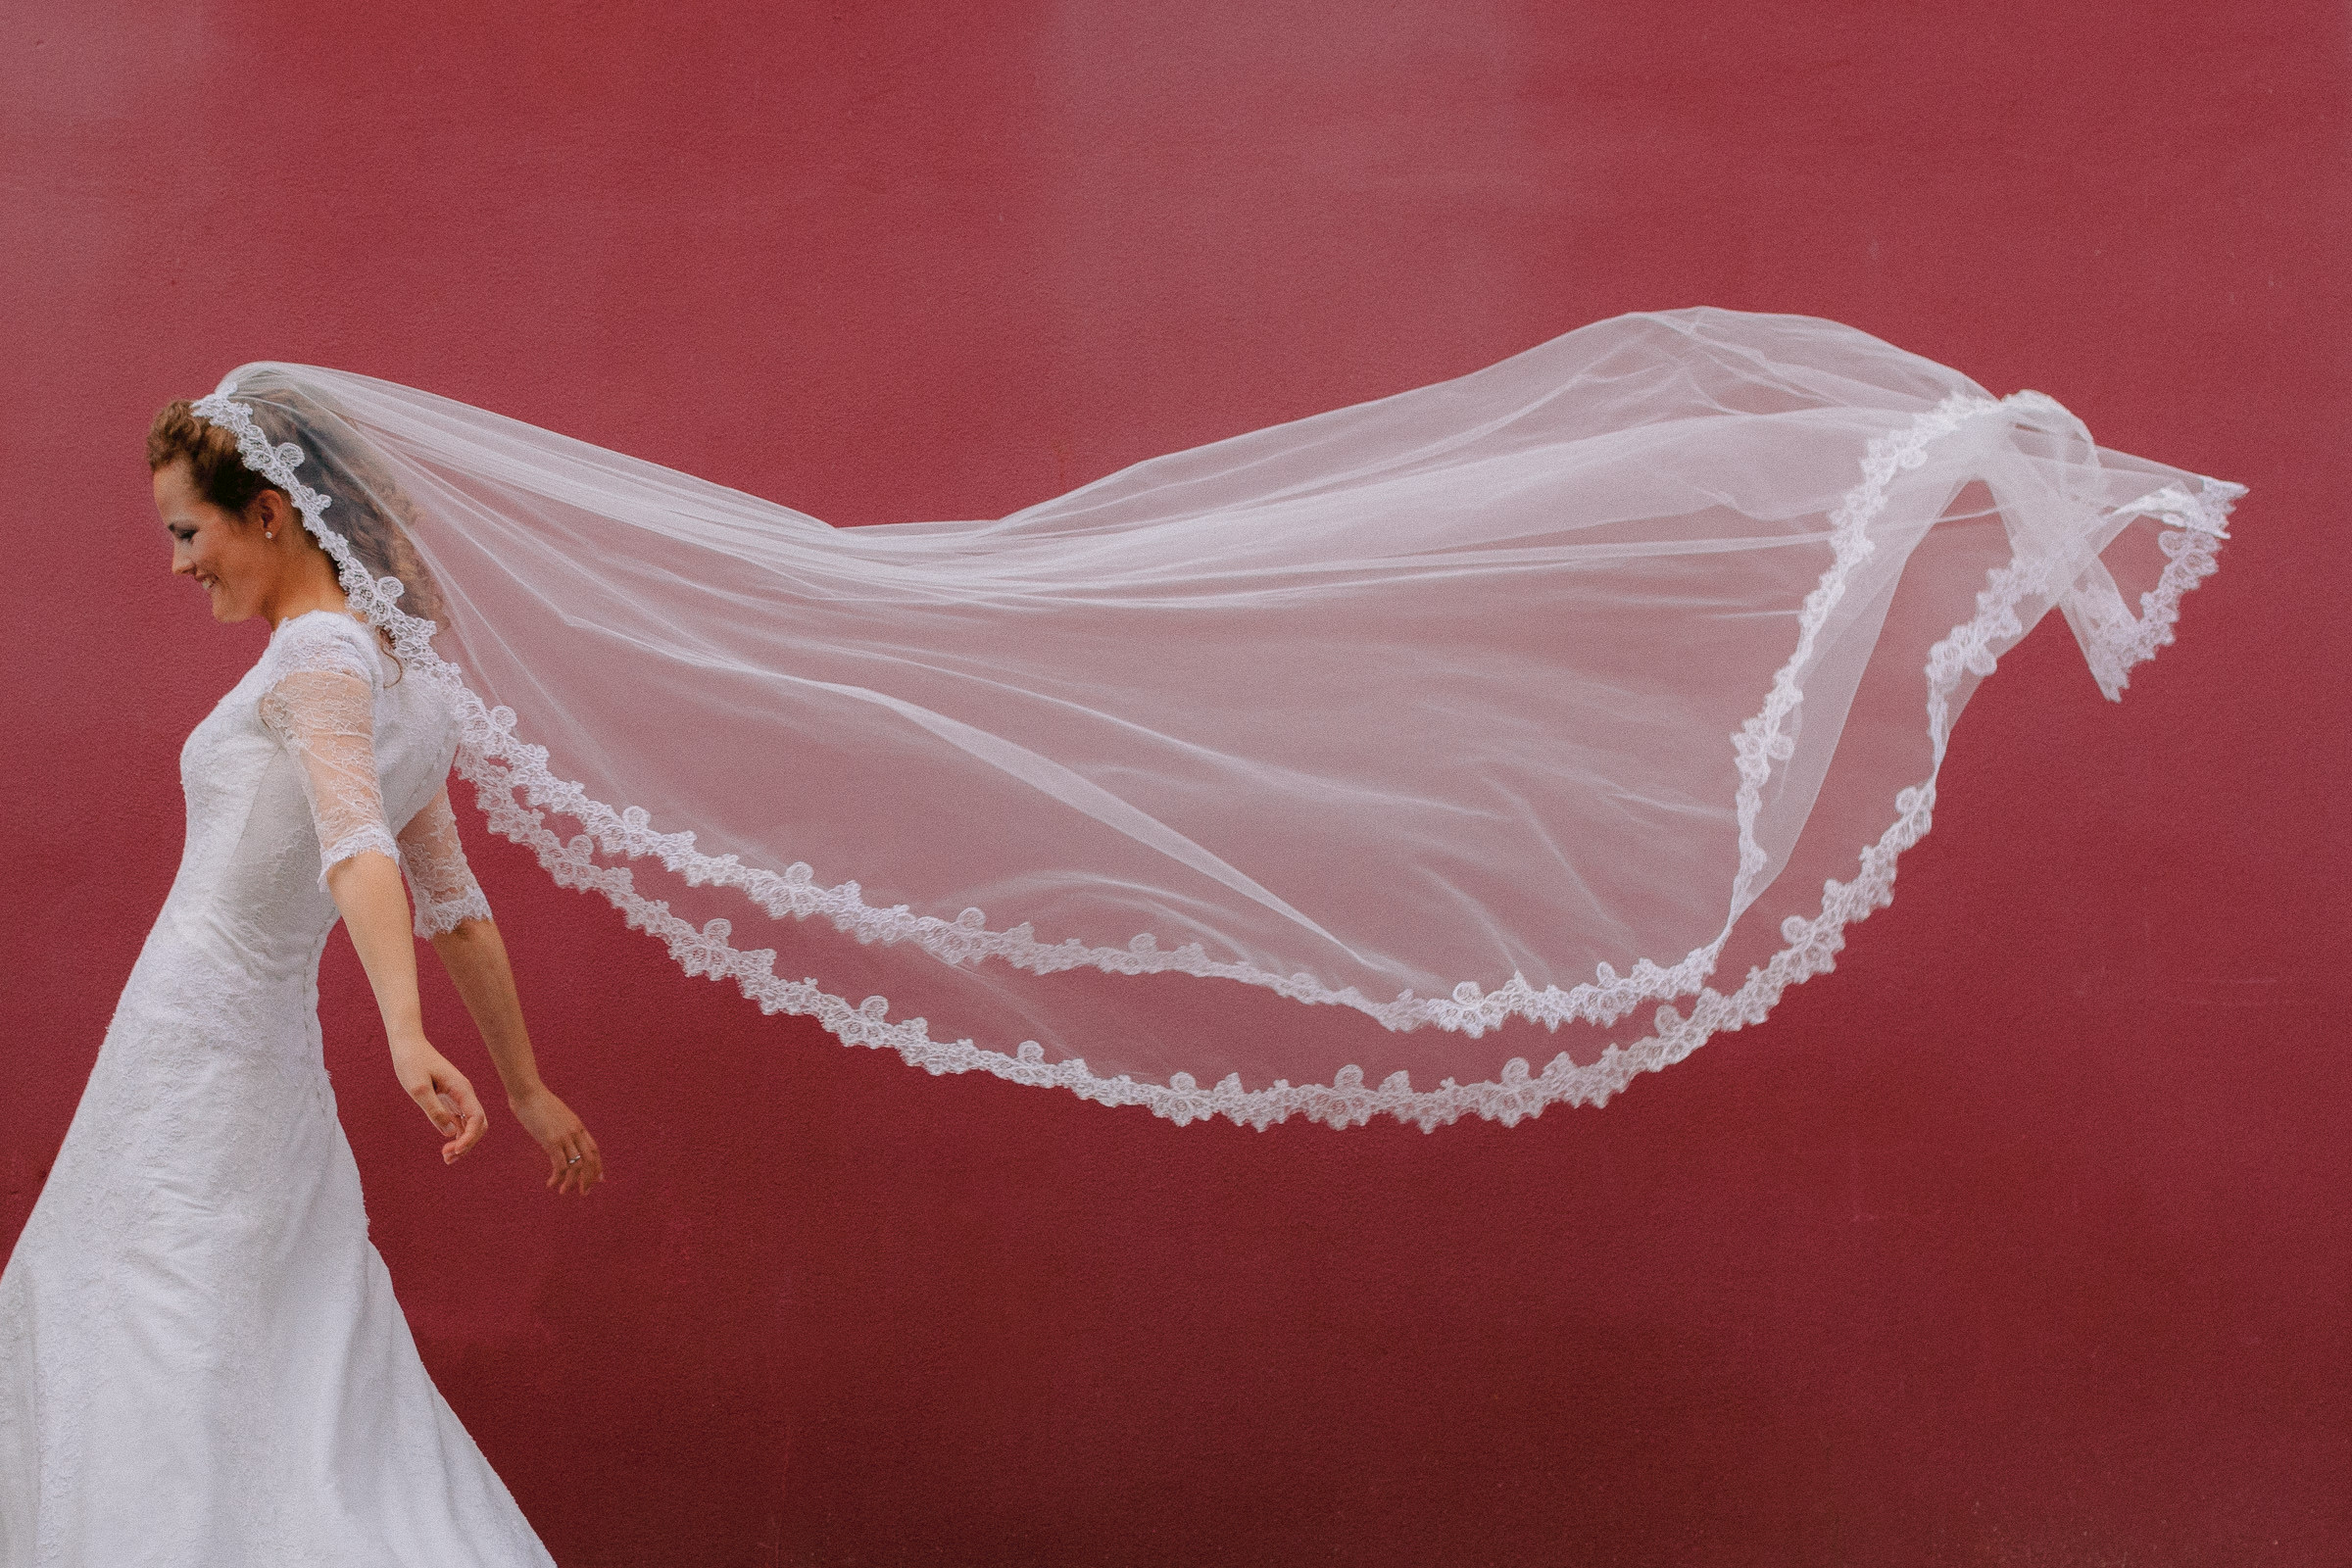 Bride in motion with long veil trailing behind - photo by Peter van der Lingen Wedding Photography